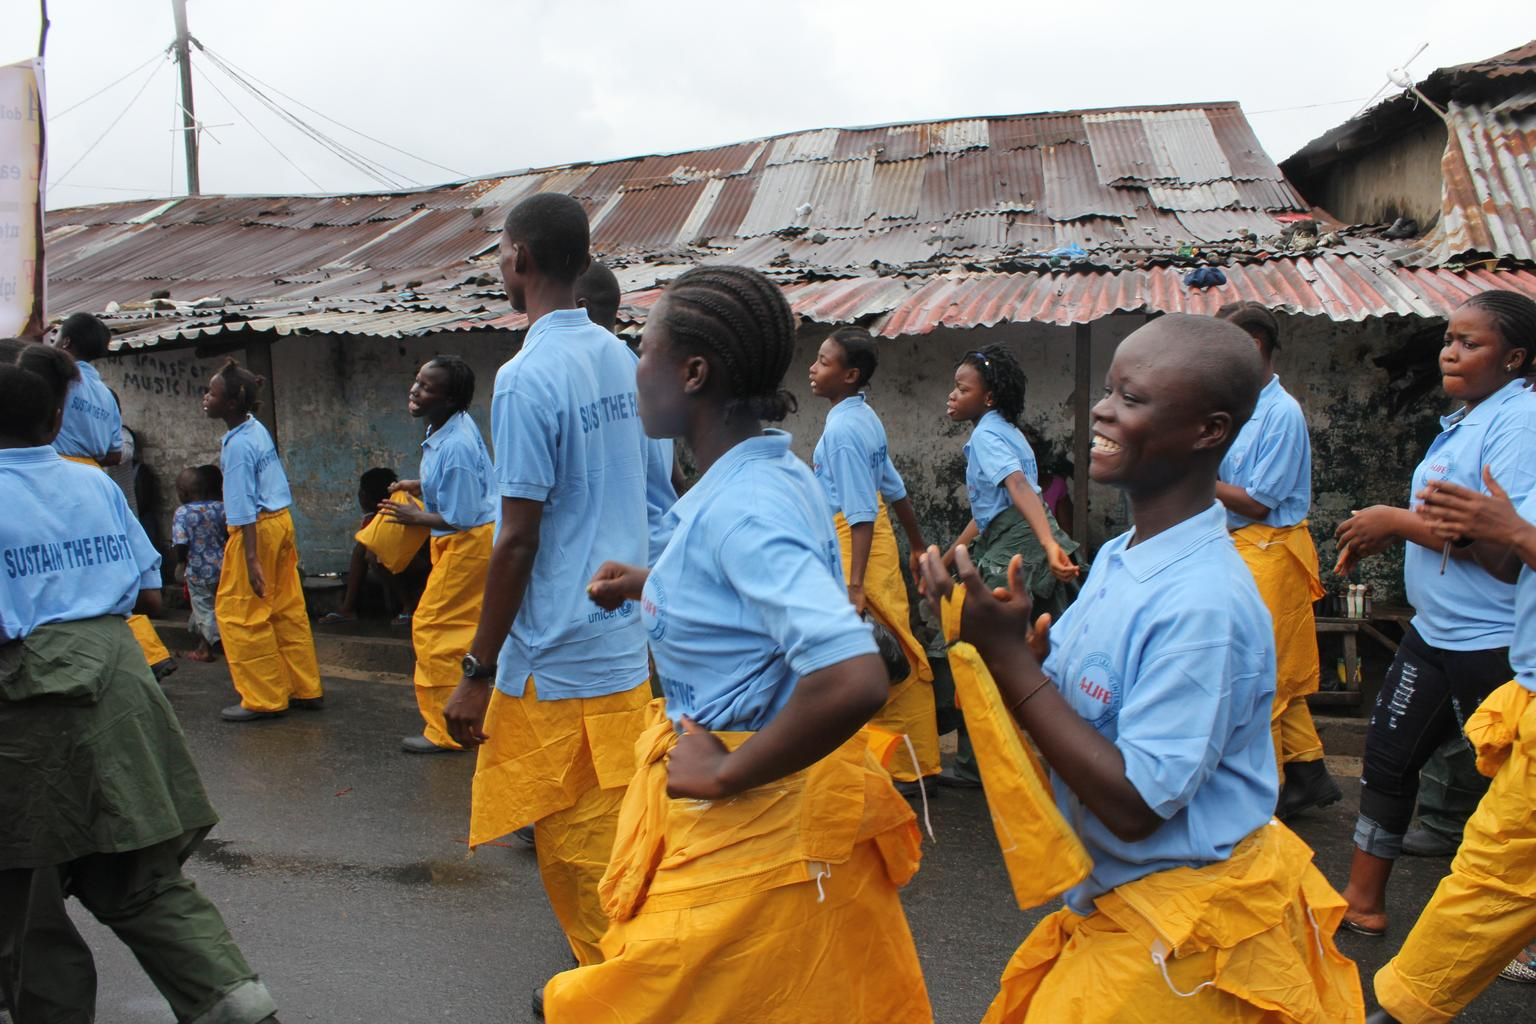 """In Liberia, adolescent girls trained by UNICEF and partners are part of Adolescents Leading the Intensive Fight against Ebola, or """"A-LIFE"""". Equipped with awareness materials, these girls go door-to-door to educate their parents, family members and friends about Ebola and how it can be prevented."""